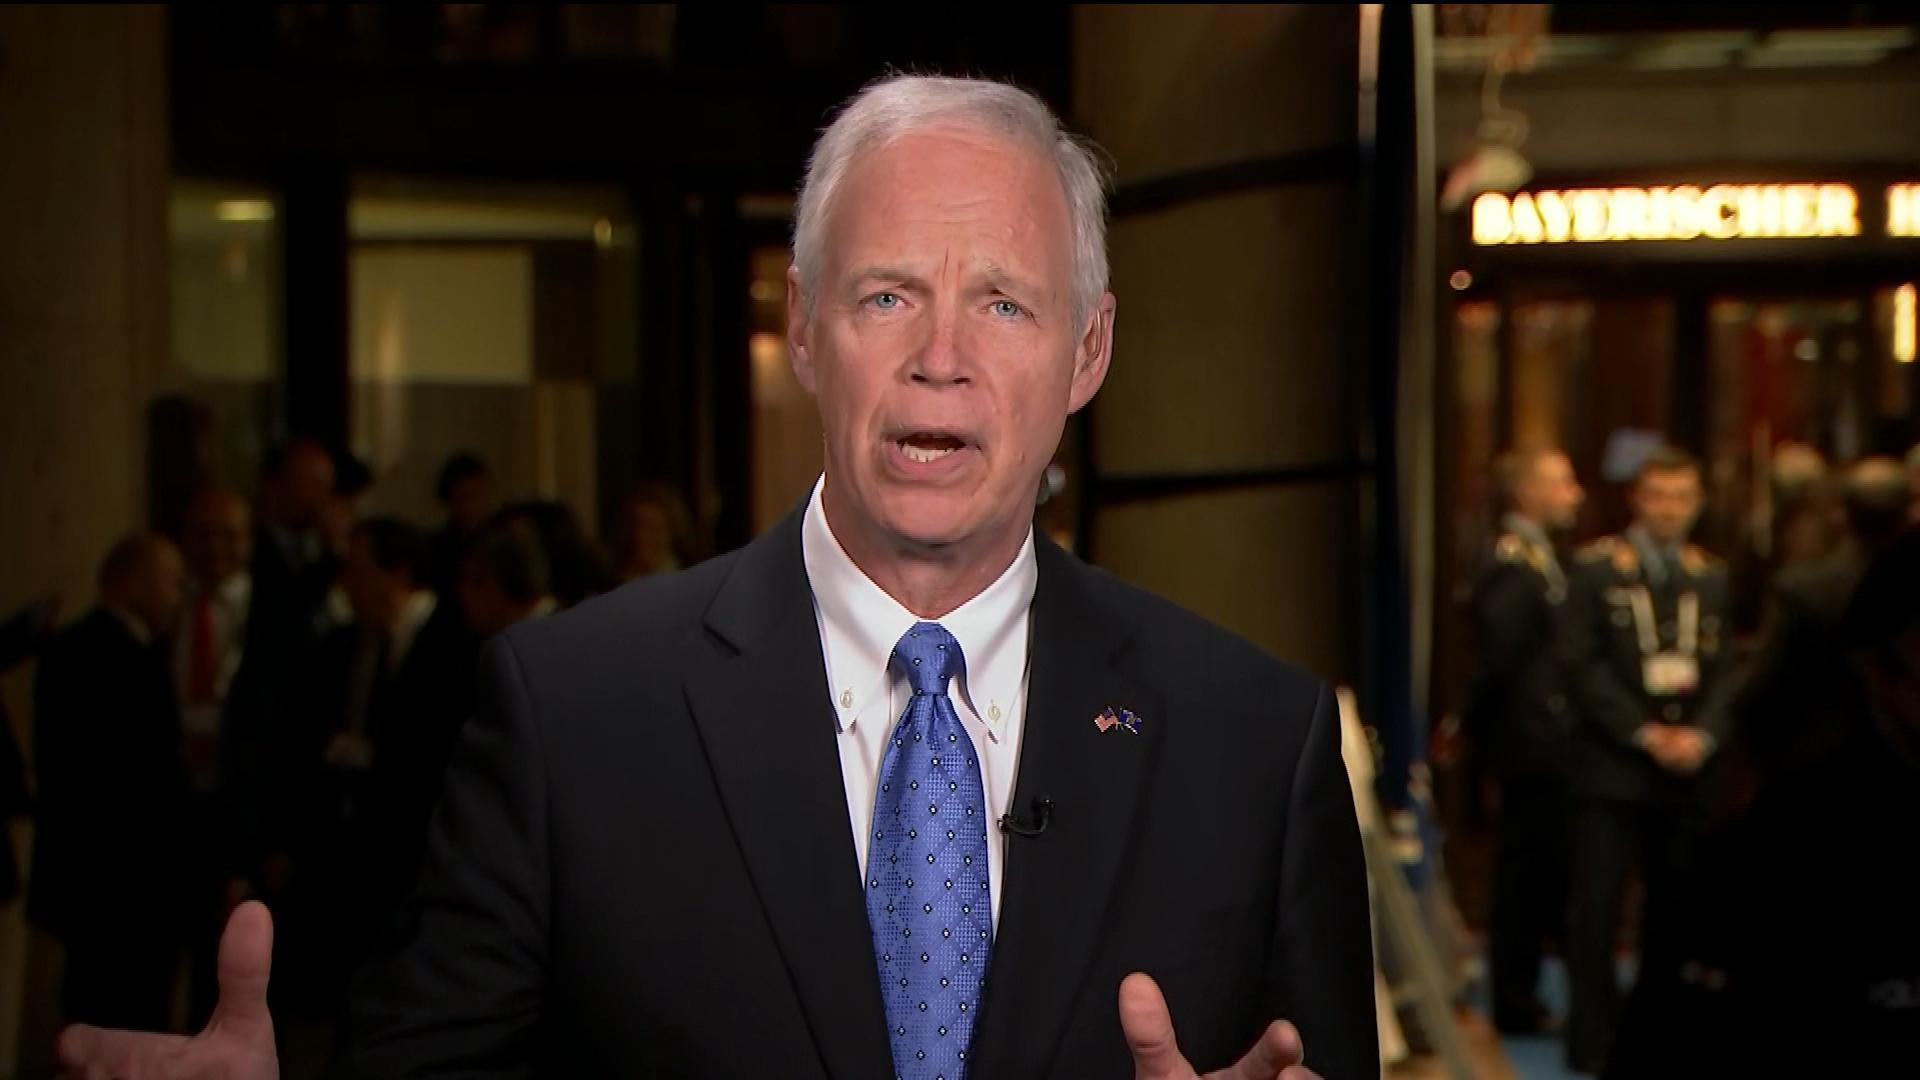 Johnson on Trump national emergency: 'I'll decide when I actually have to vote on it'